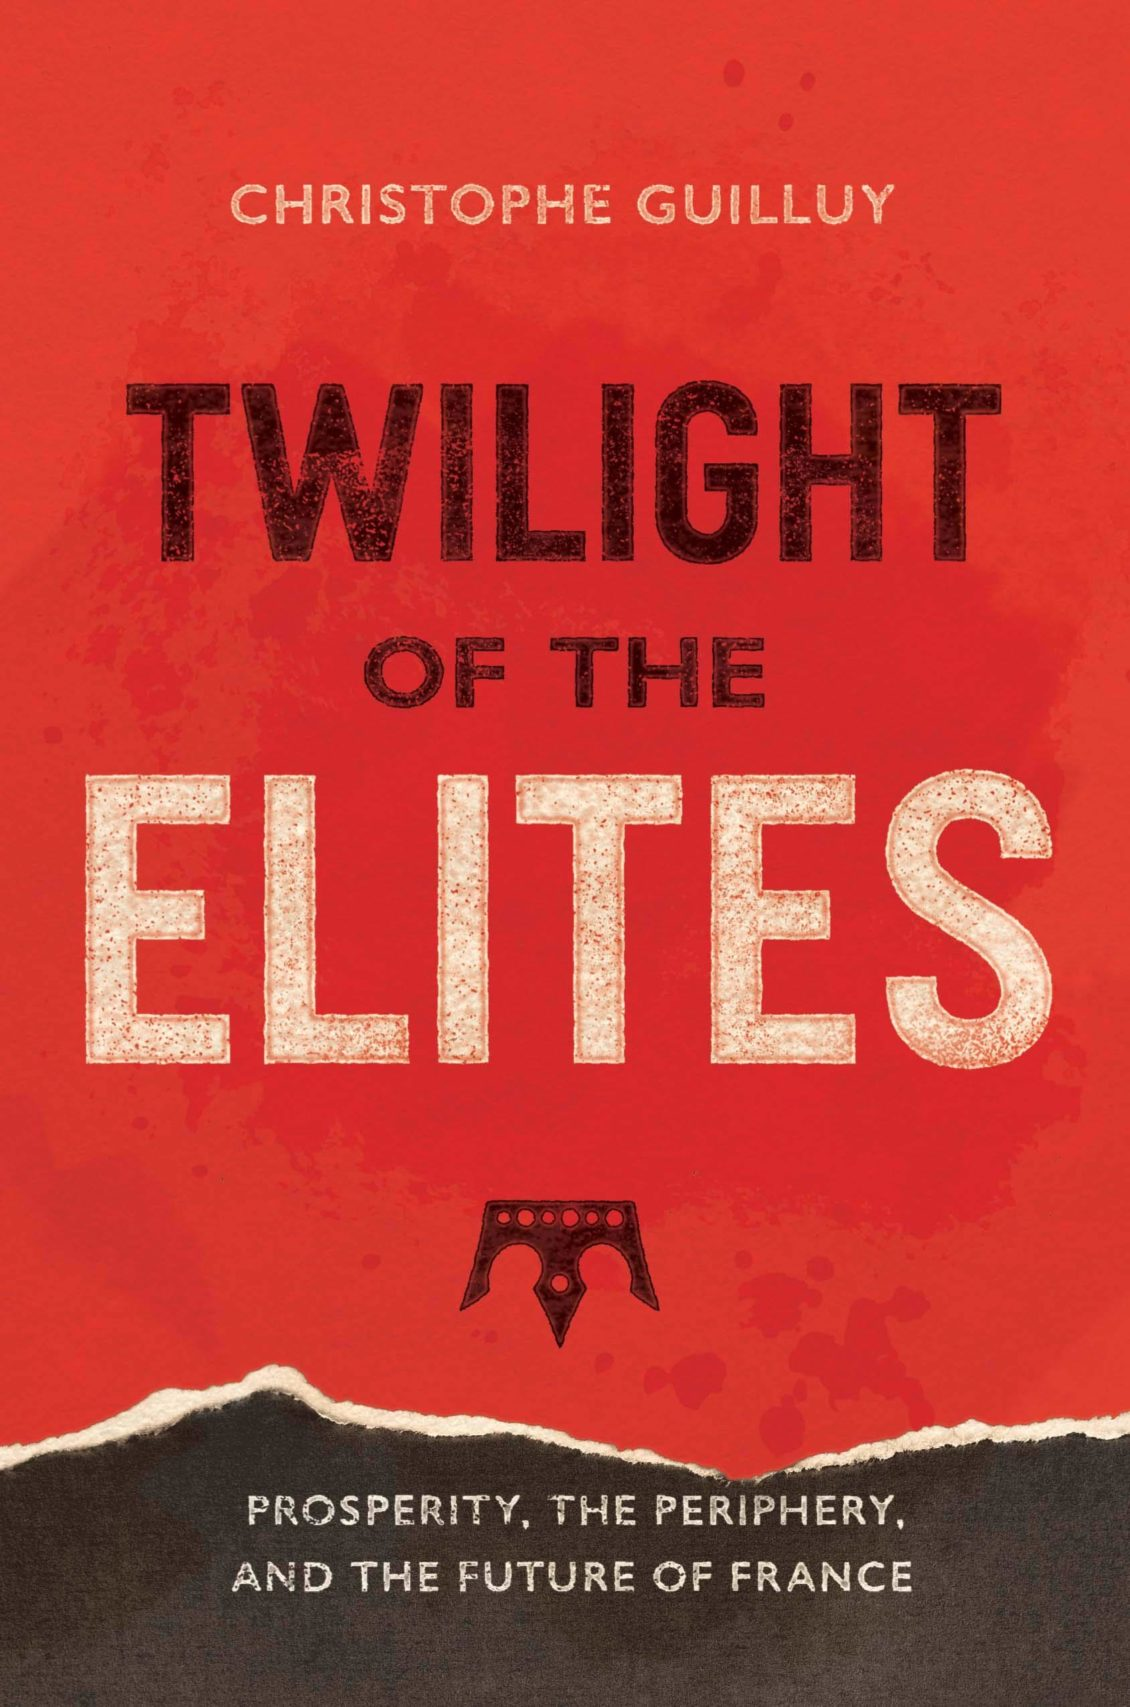 Front cover of Twilight of the Elites by Christophe Guilluy